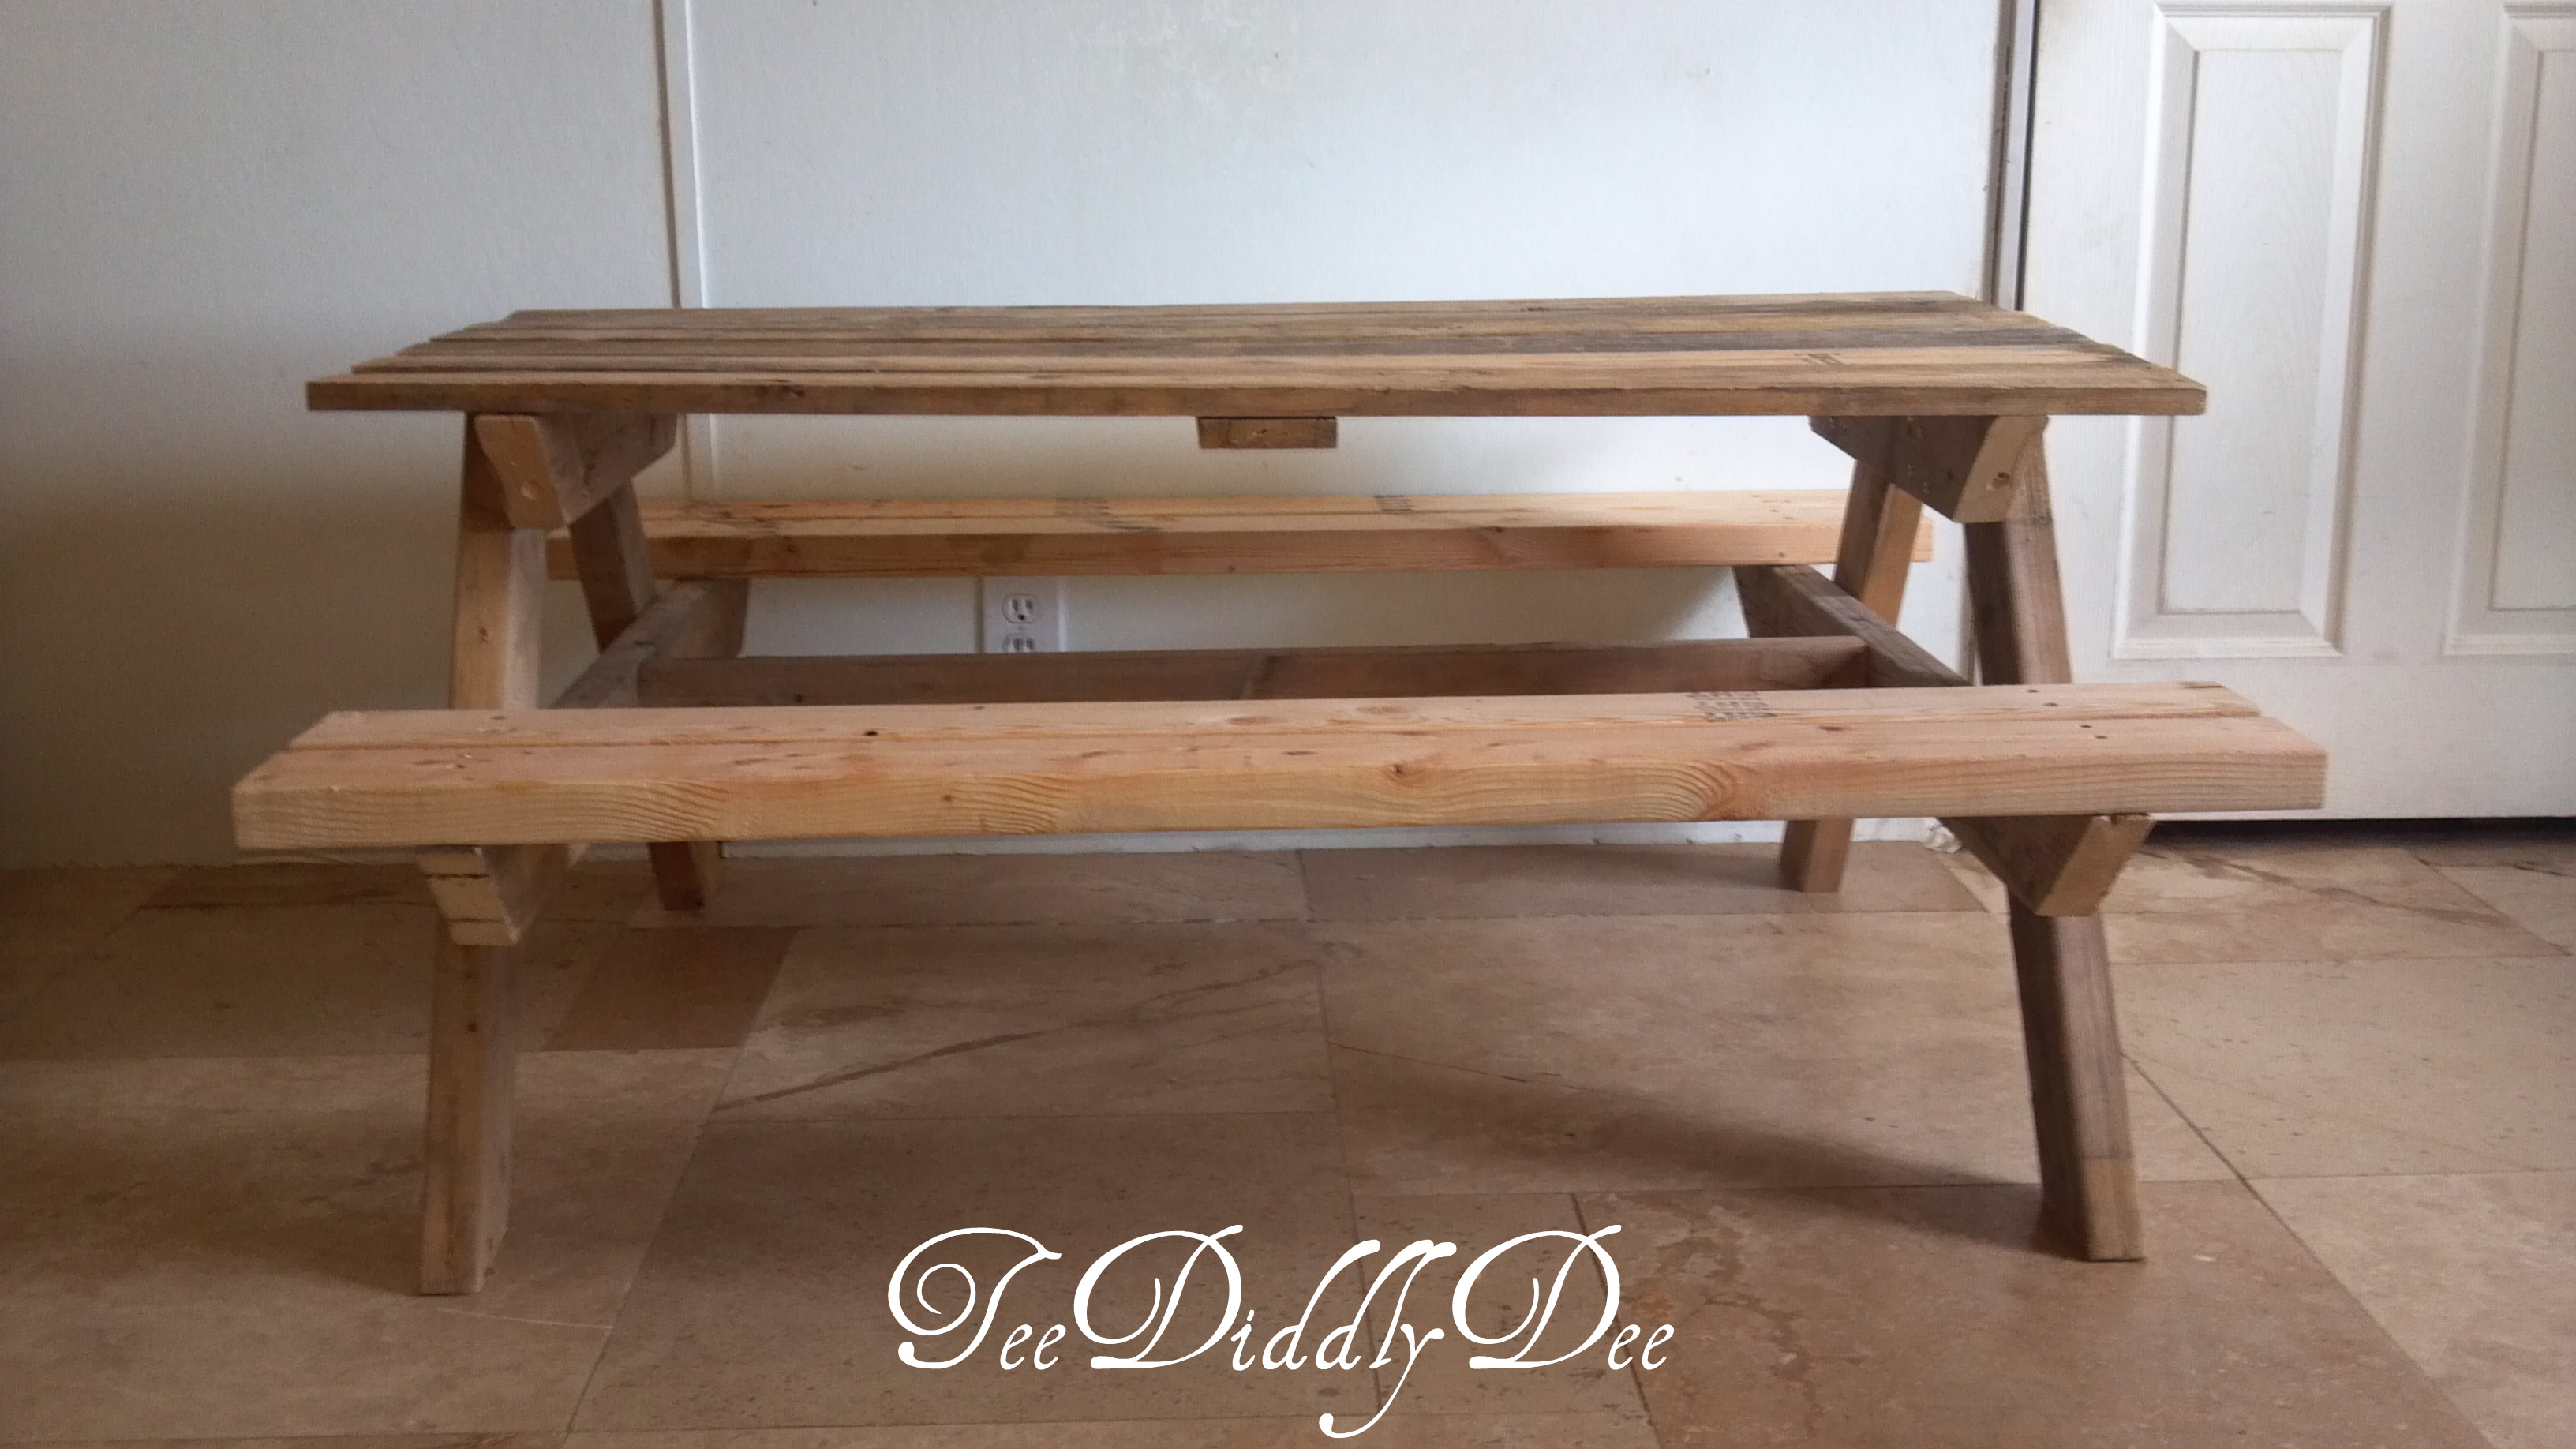 How to build kid size picnic table out of old recycled pallets teediddlydee - How to make table out of wood pallets ...